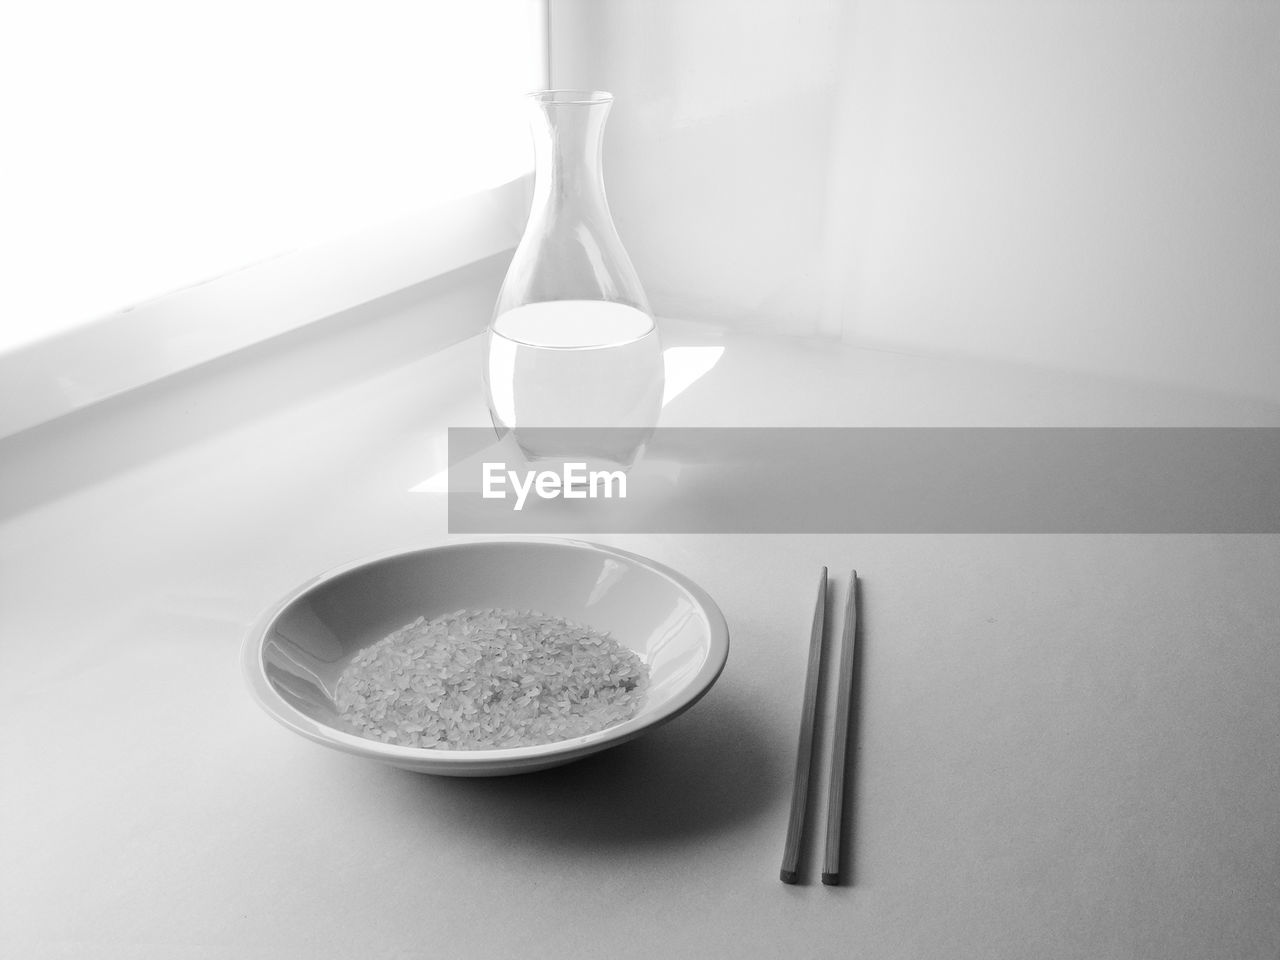 food and drink, indoors, table, no people, household equipment, still life, food, kitchen utensil, white background, bowl, eating utensil, close-up, studio shot, high angle view, healthy eating, glass - material, spoon, glass, freshness, plate, table knife, steel